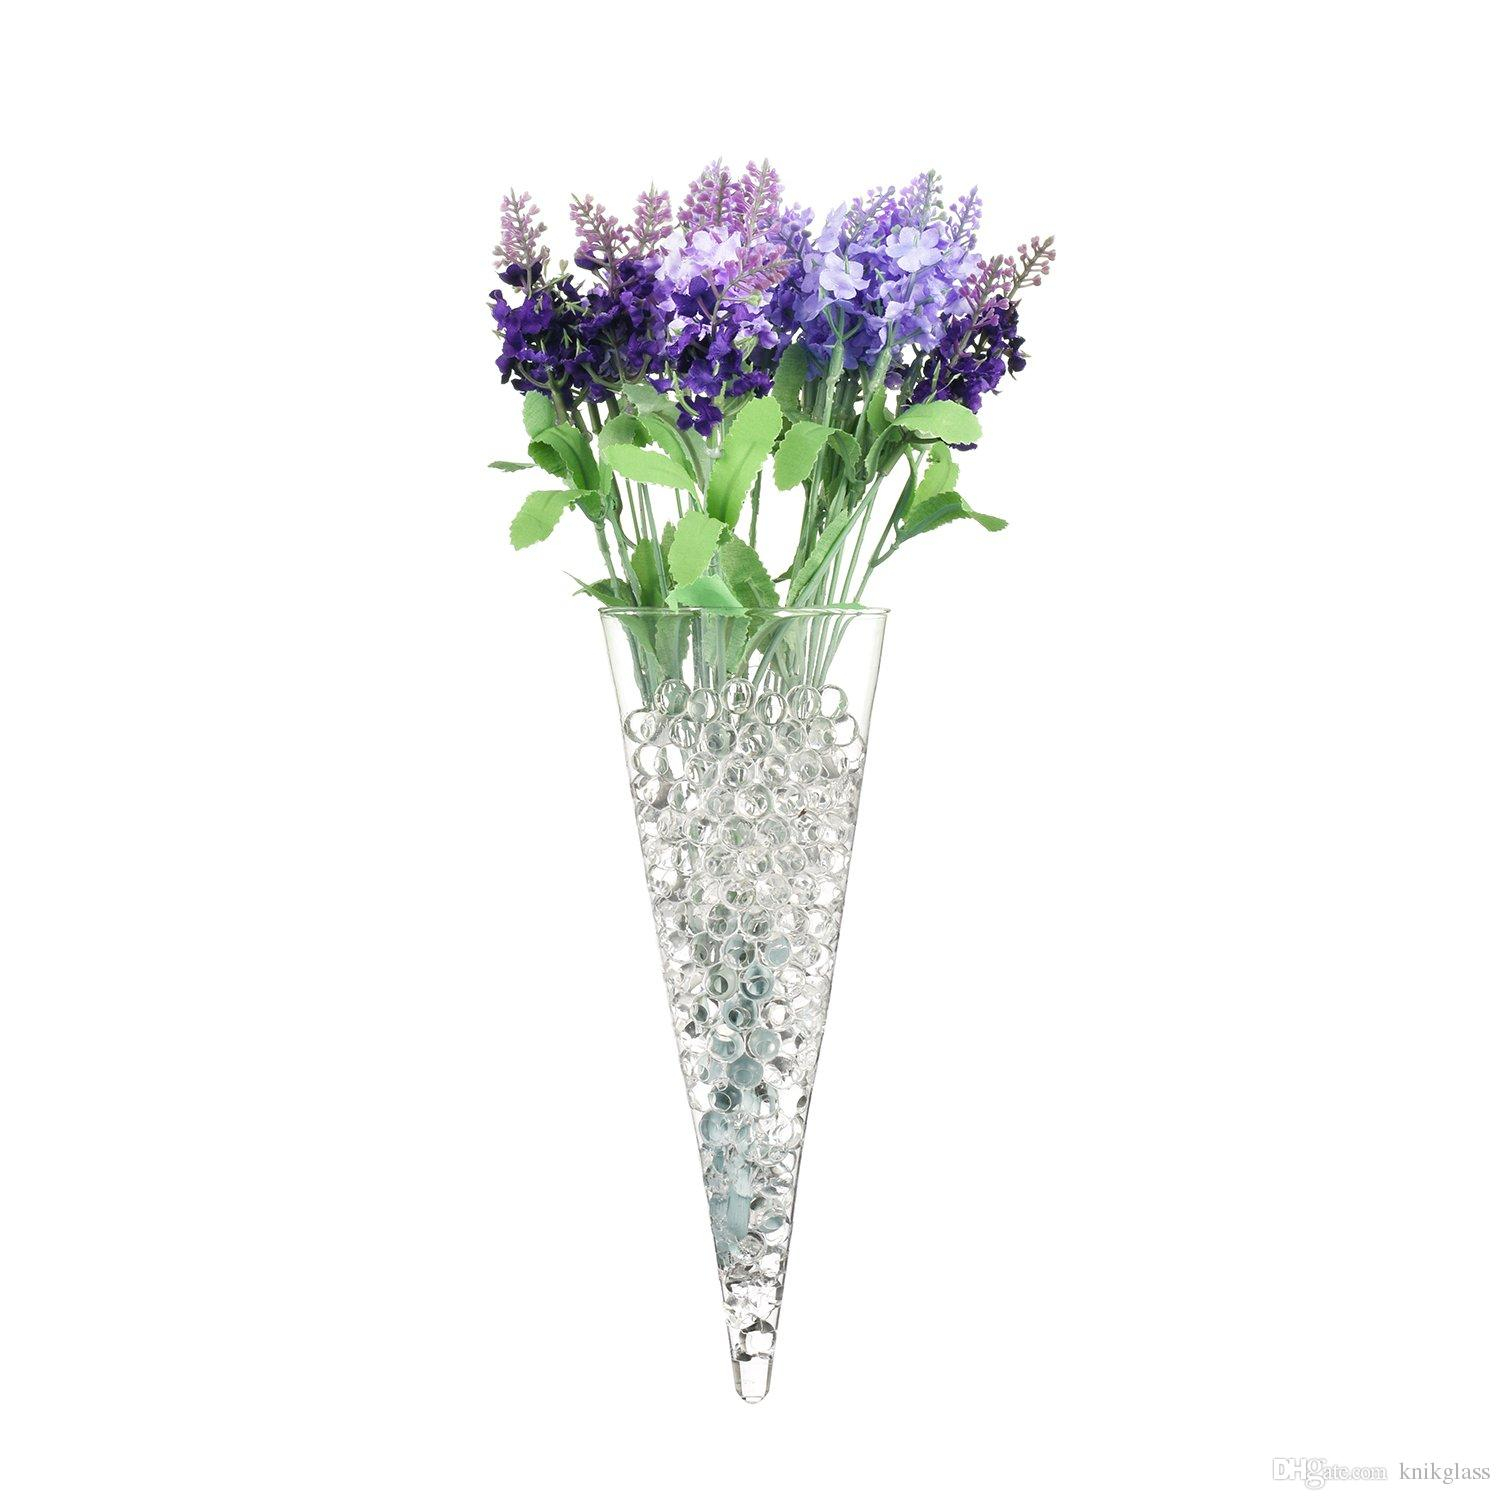 S/3 Cone Shape Glass Wall Vase For Water Plants Holders Wall Mounts Throughout Well Liked Three Glass Holder Wall Decor (Gallery 20 of 20)